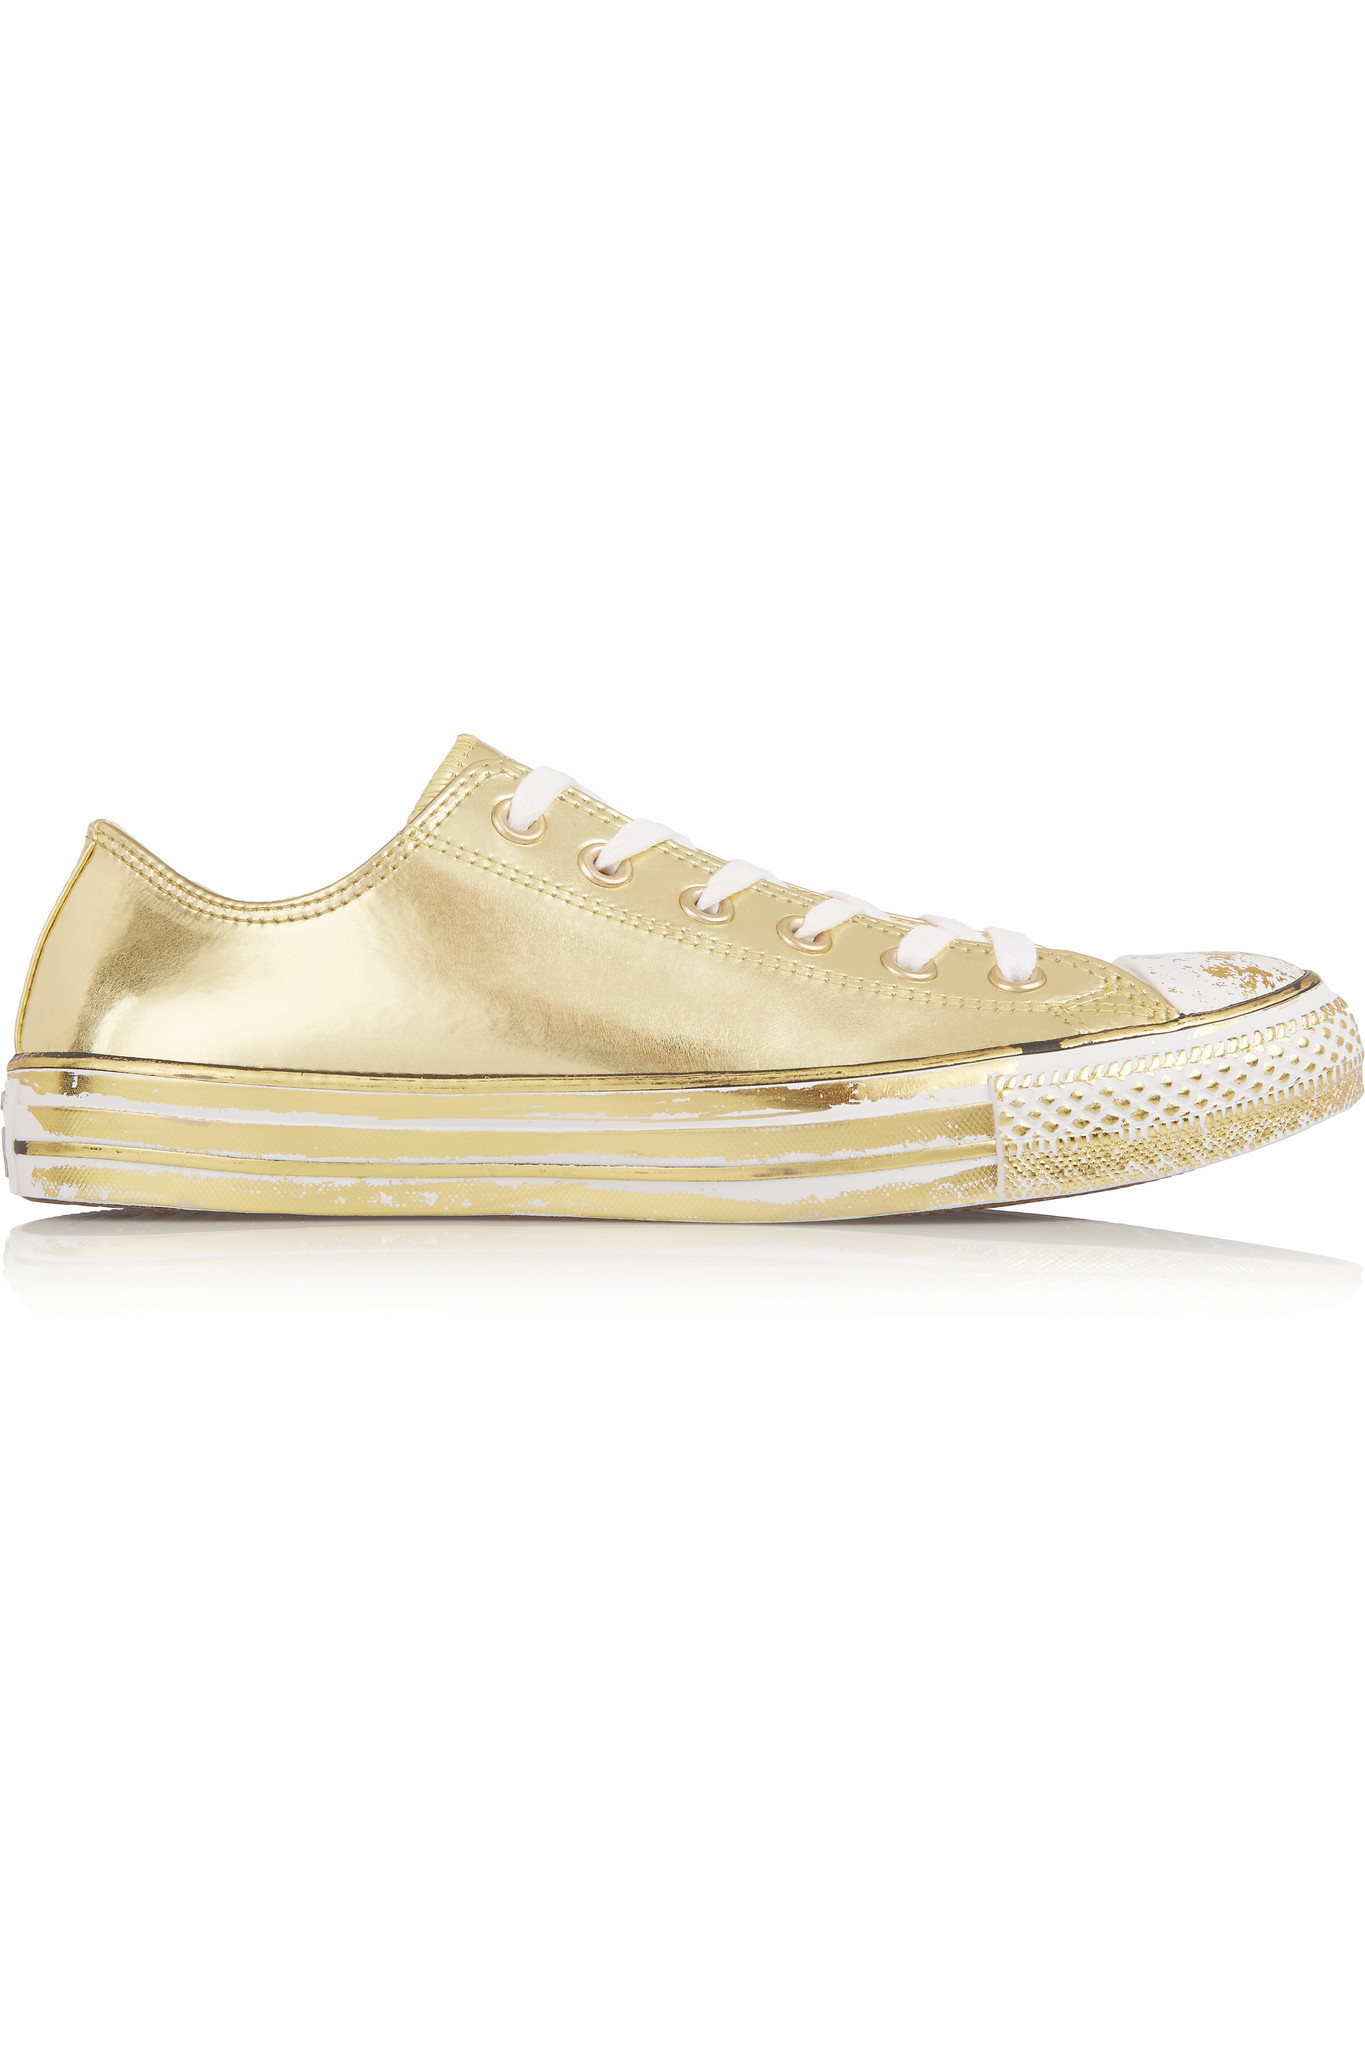 e43e337dbb9c Converse Chuck Taylor All Star Chrome Metallic Leather Sneakers in ...